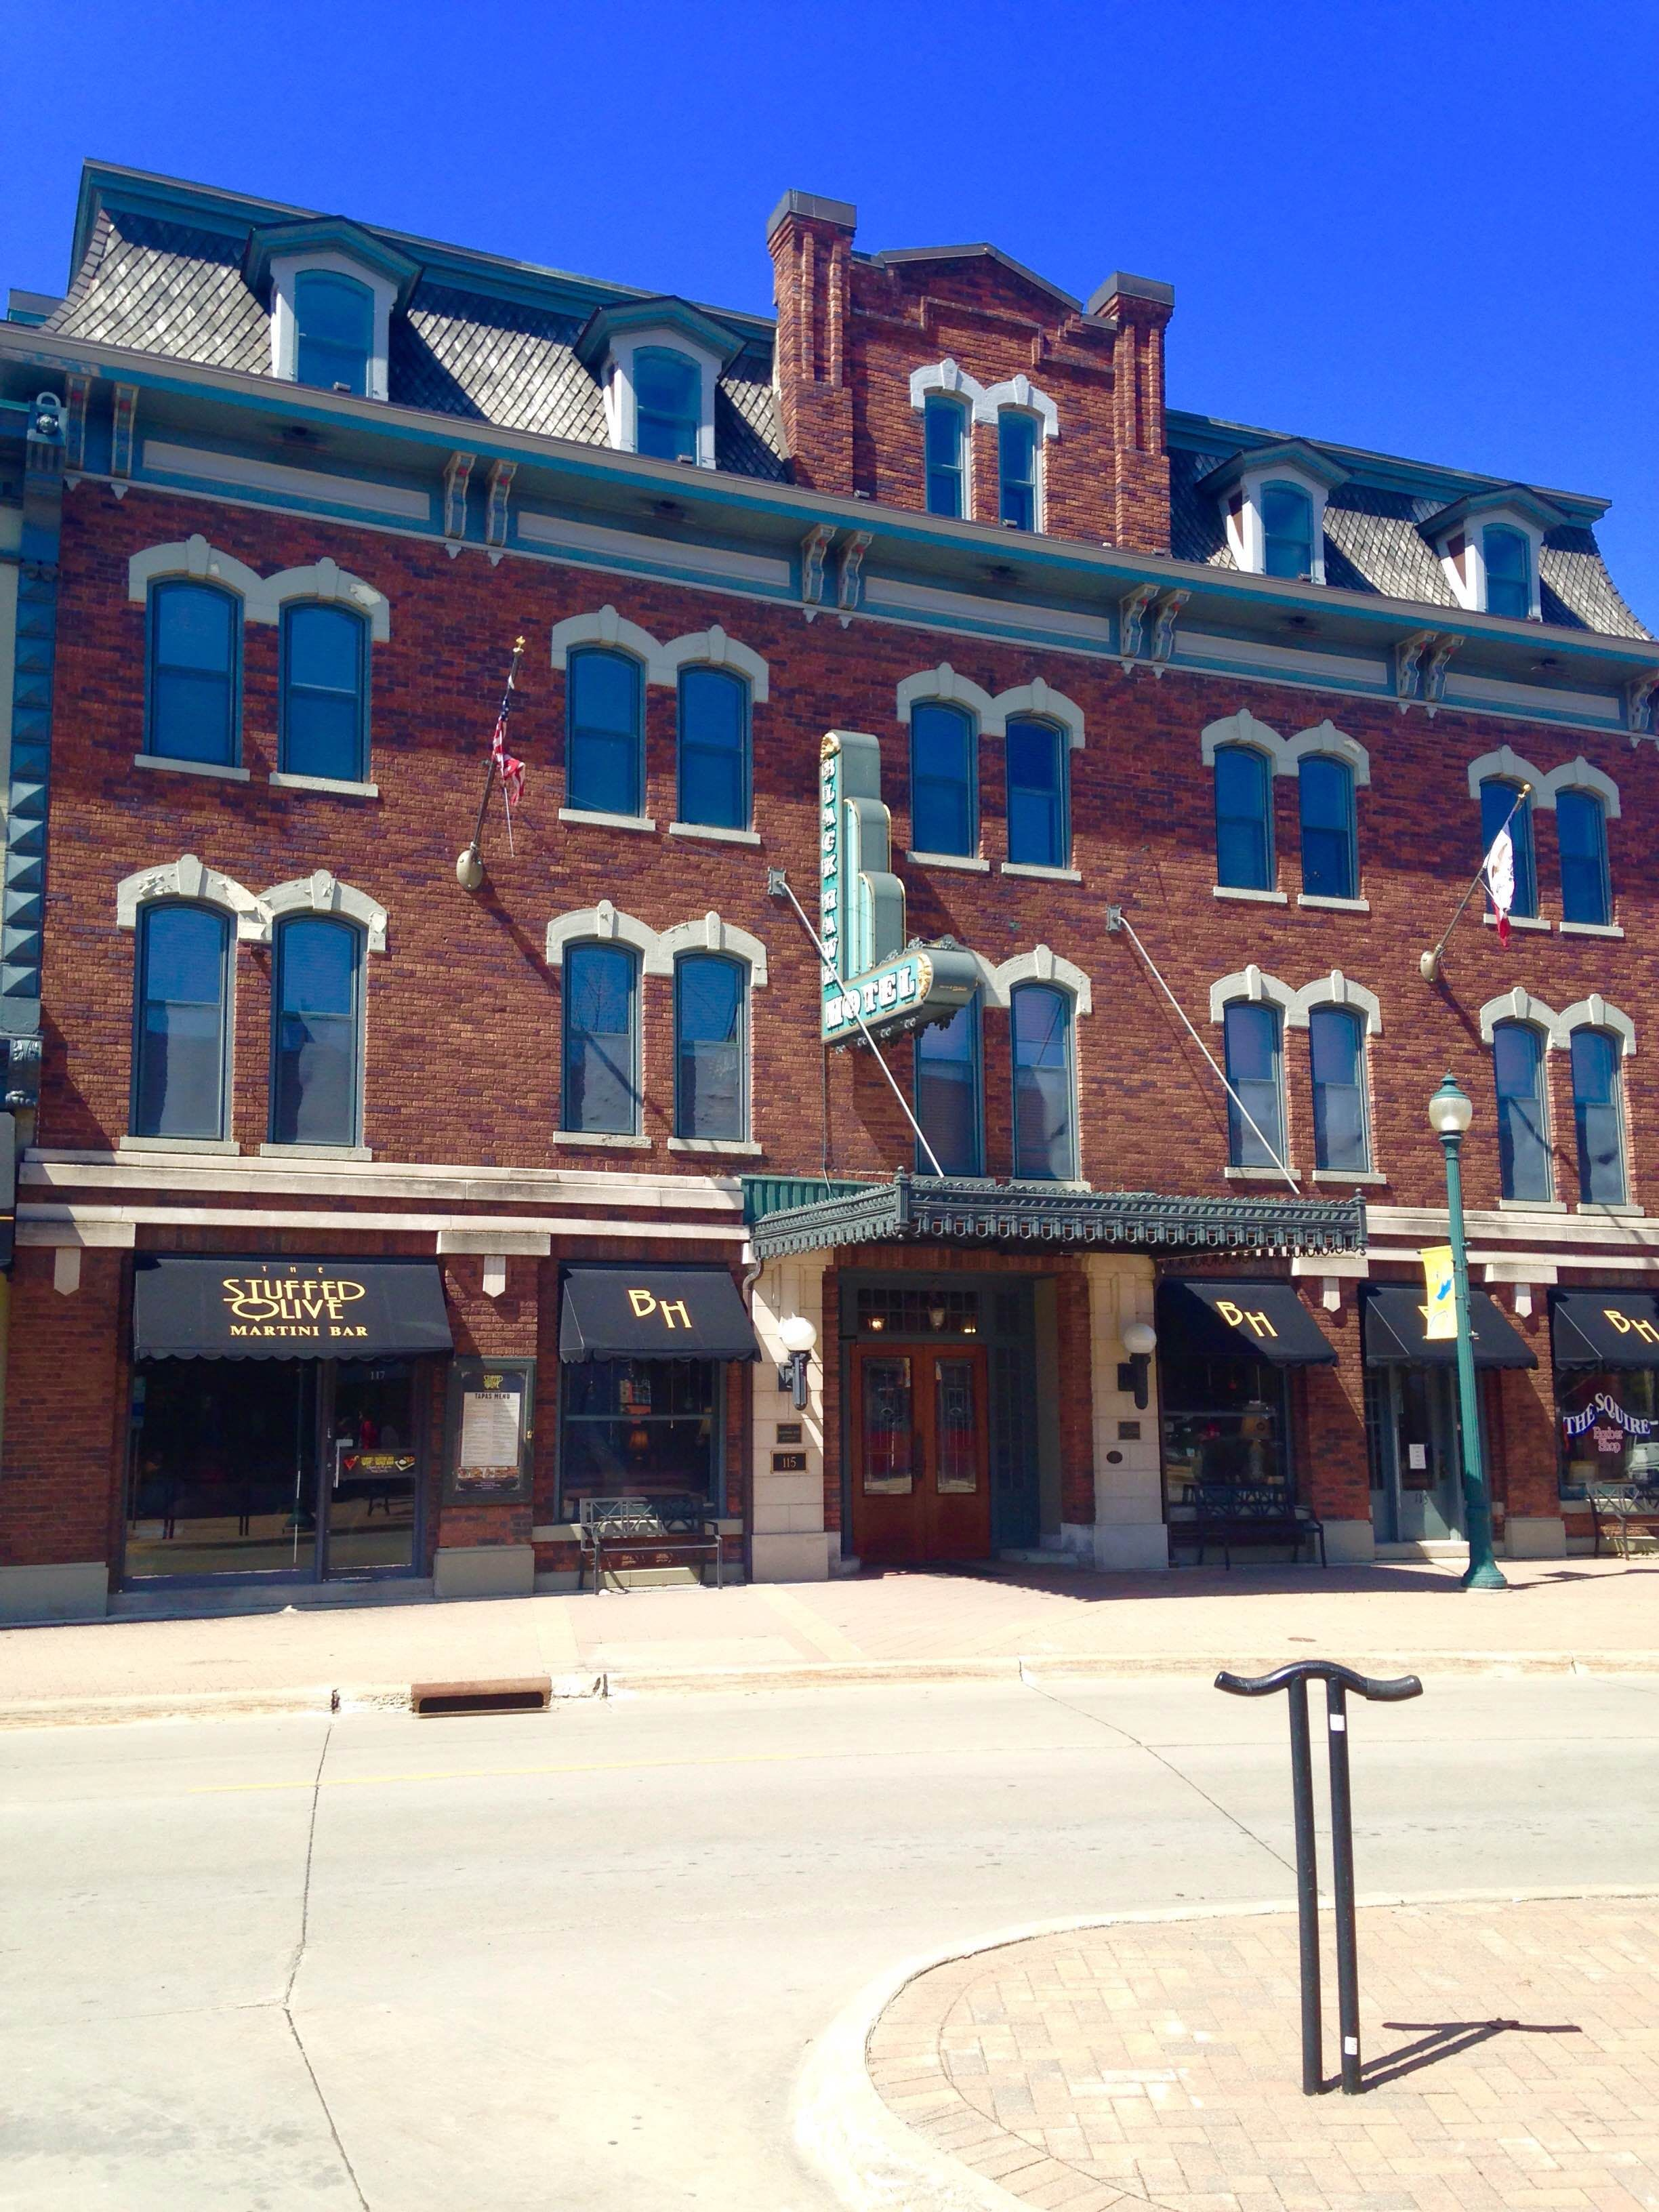 scouting ragbrai 2015 part 3 of 8 the personalities of downtown cedar falls from an old ice house to 4 alarm thai food